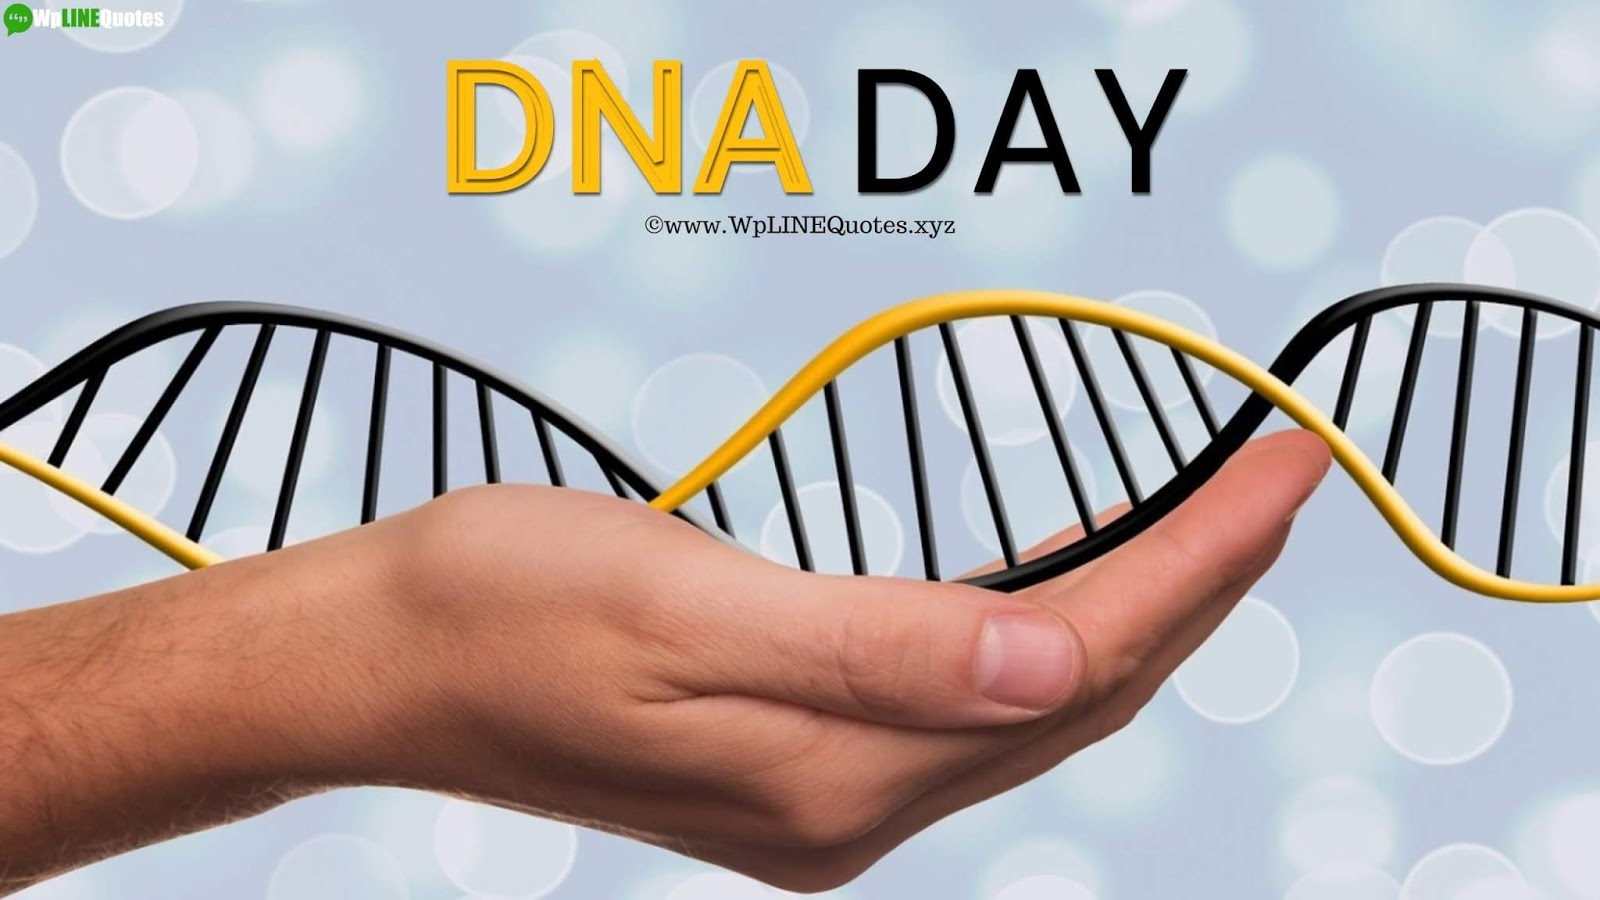 National DNA Day Quotes, Messages, History, Facts, Images, Pictures, Wallpaper